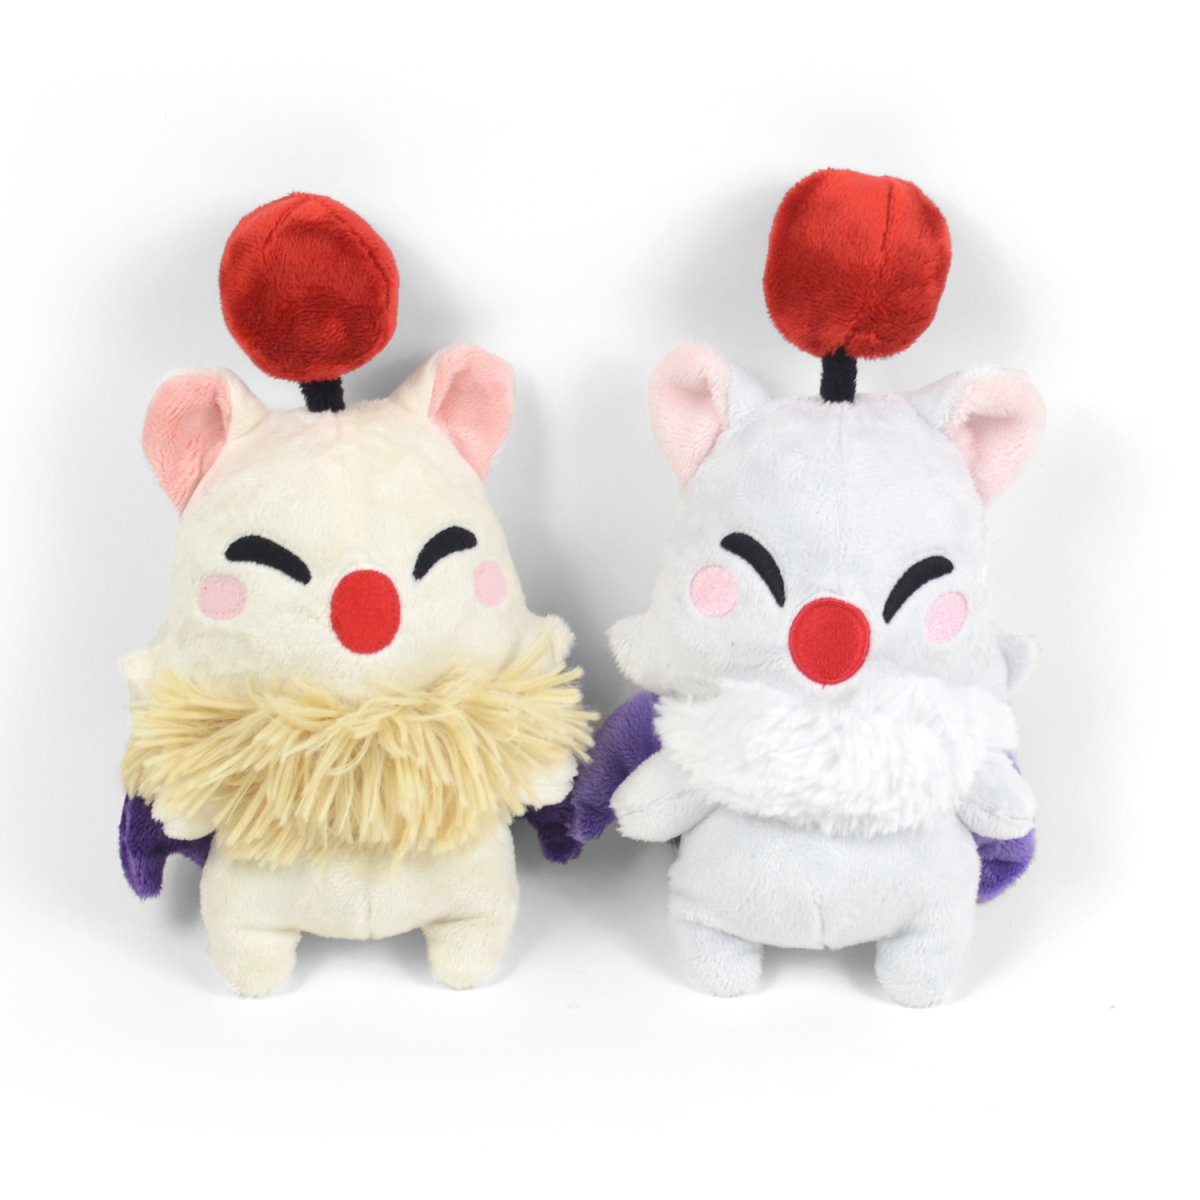 Free Pattern Friday! Moogle Plush